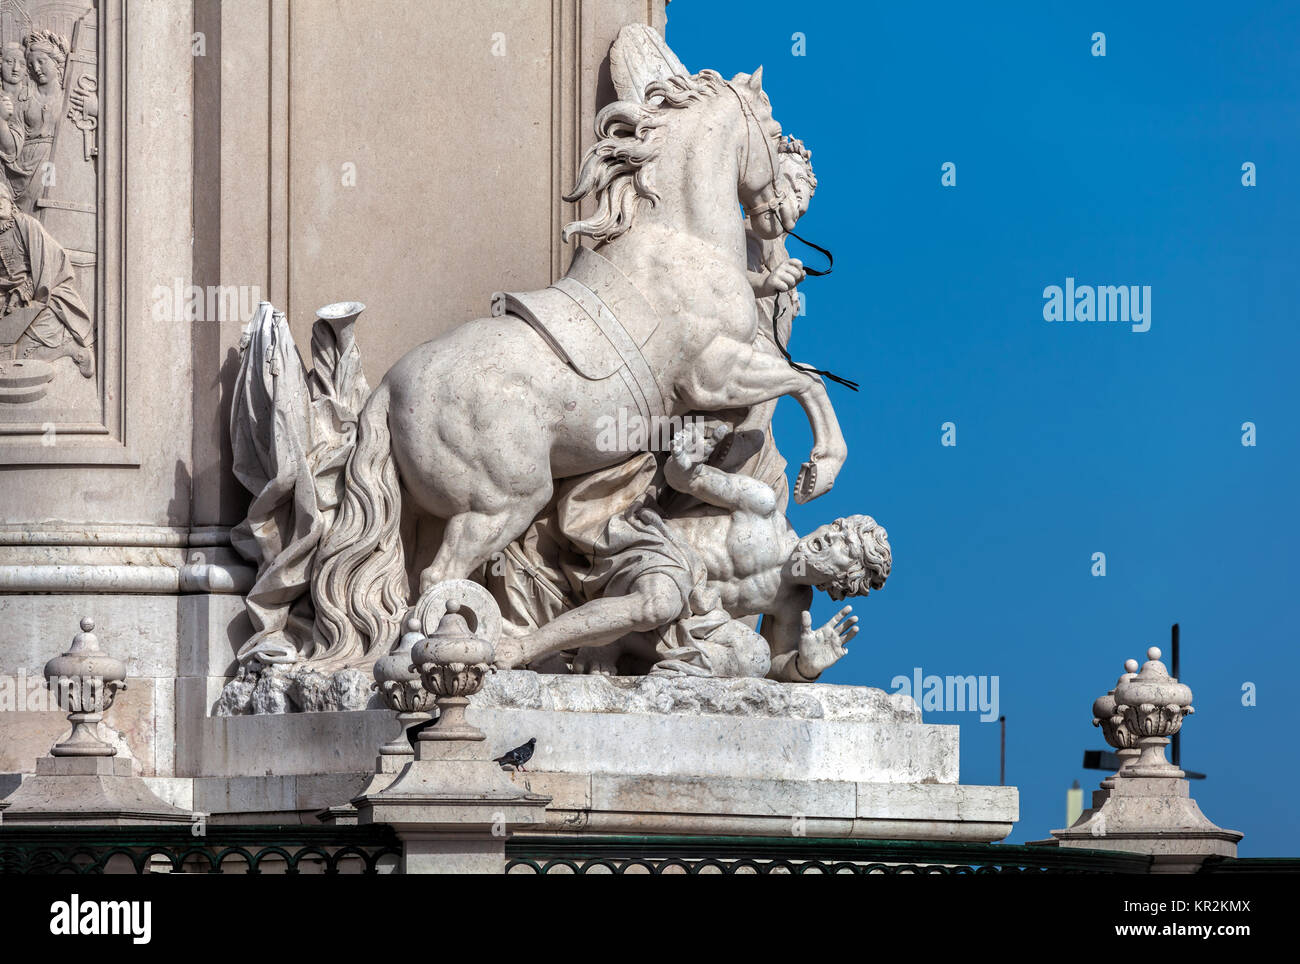 Fragment of the monument to the King Jose I in Lisbon, Portugal - Stock Image